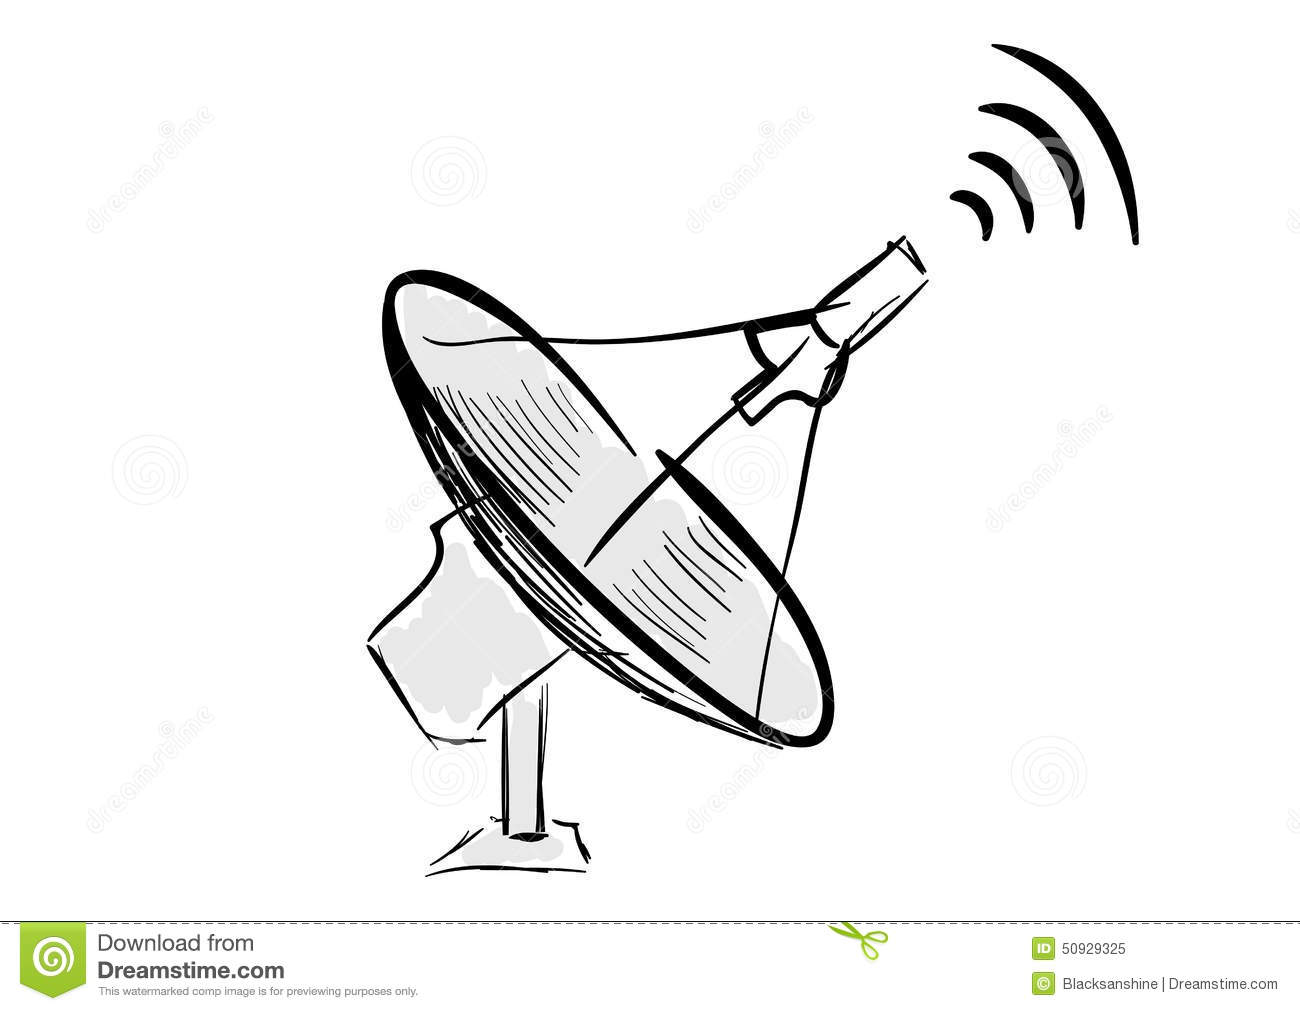 Rohn 25g Tower Sections 1258 moreover Satellite Tv as well Illustrazione Di Stock Antenna Satellite Image50929325 in addition 3 further Stock Photography  munications Tower Image12268442. on wireless antenna